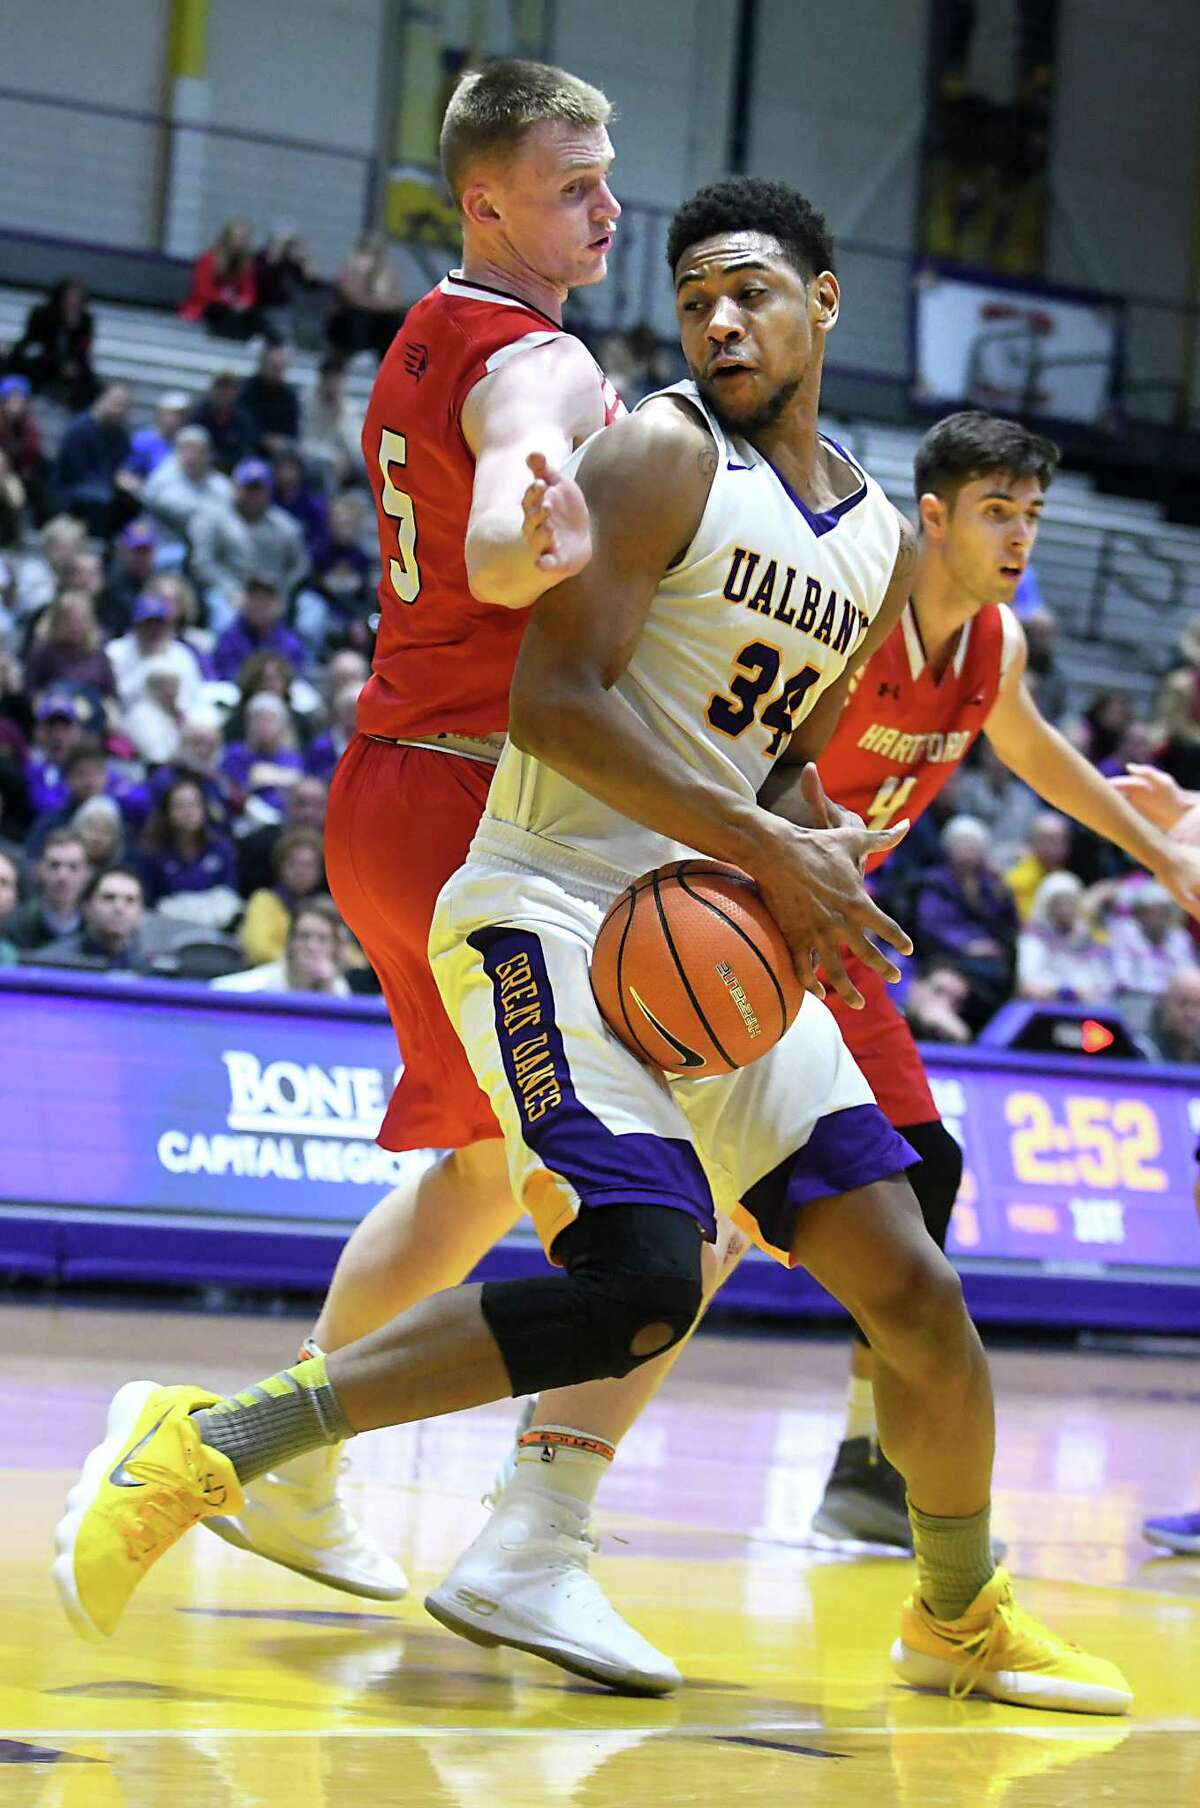 University at Albany's Alex Foster is guarded by Hartford's John Carroll as he makes a move to the basket during a basketball game at SEFCU Arena on Wednesday, Jan. 3, 2018 in Albany, N.Y. (Lori Van Buren / Times Union)